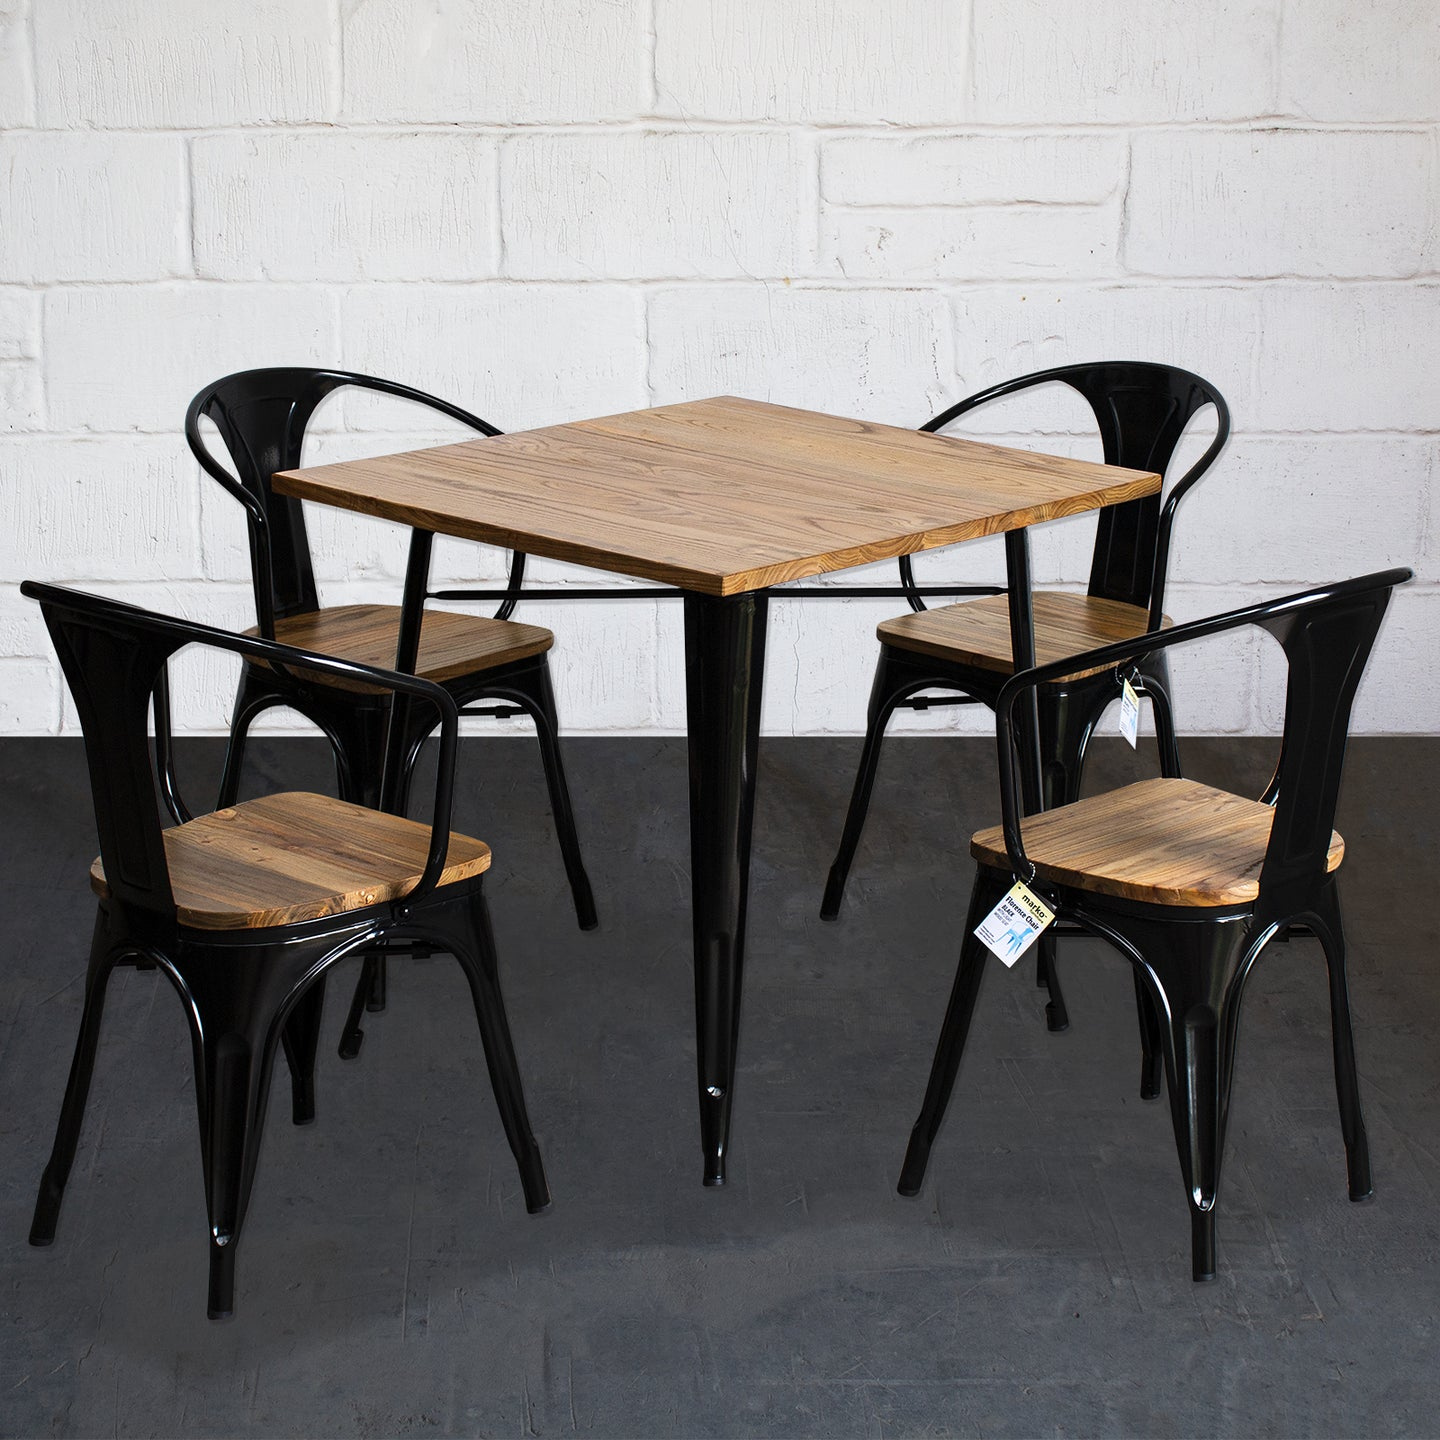 5PC Enna Table & Florence Chair Set - Black